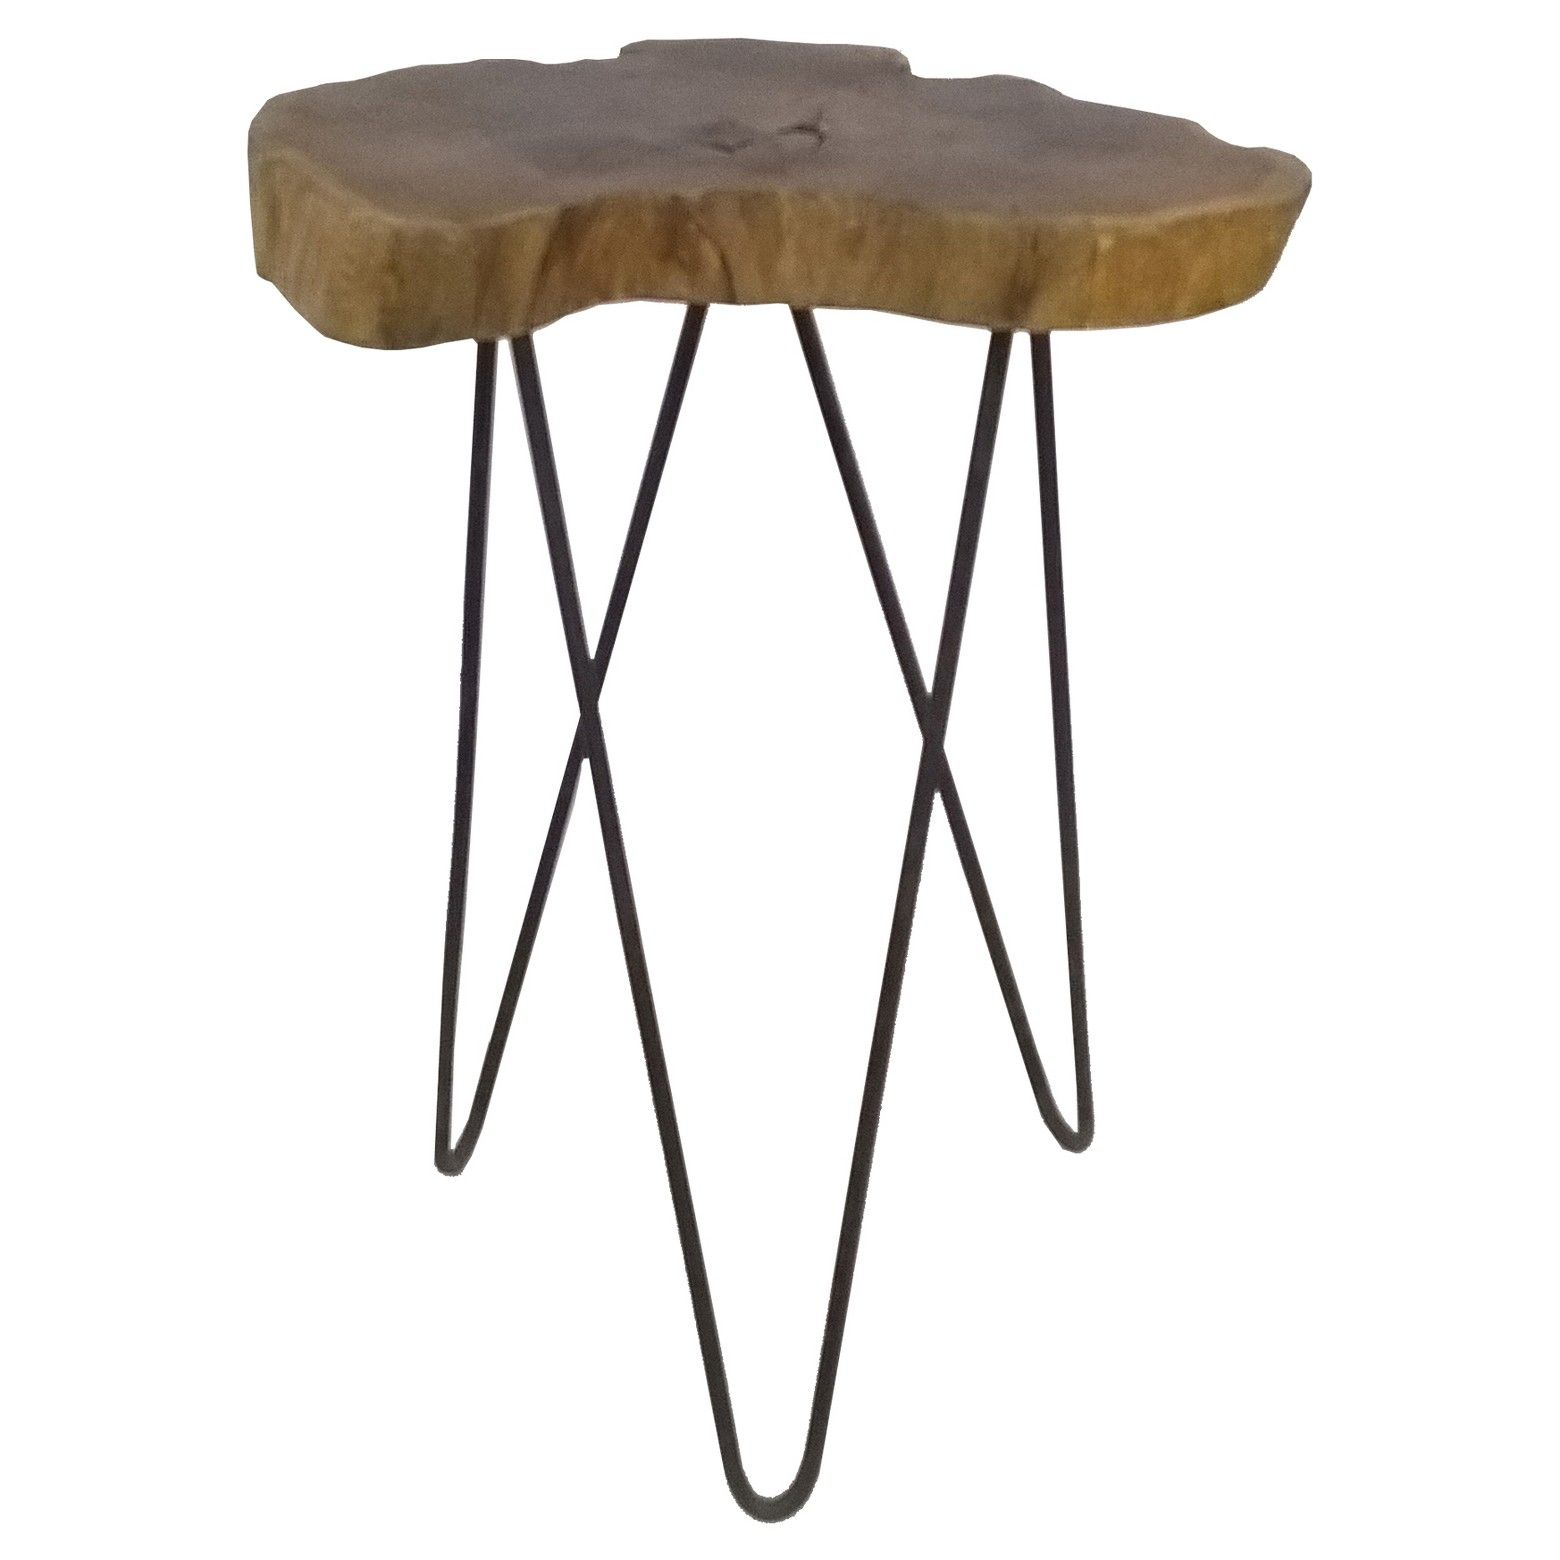 the beauty this live edge accent table from threshold brown how surprisingly versatile equally home rustic farmhouse glam aluminum carpet transition strips tiffany peacock lamp